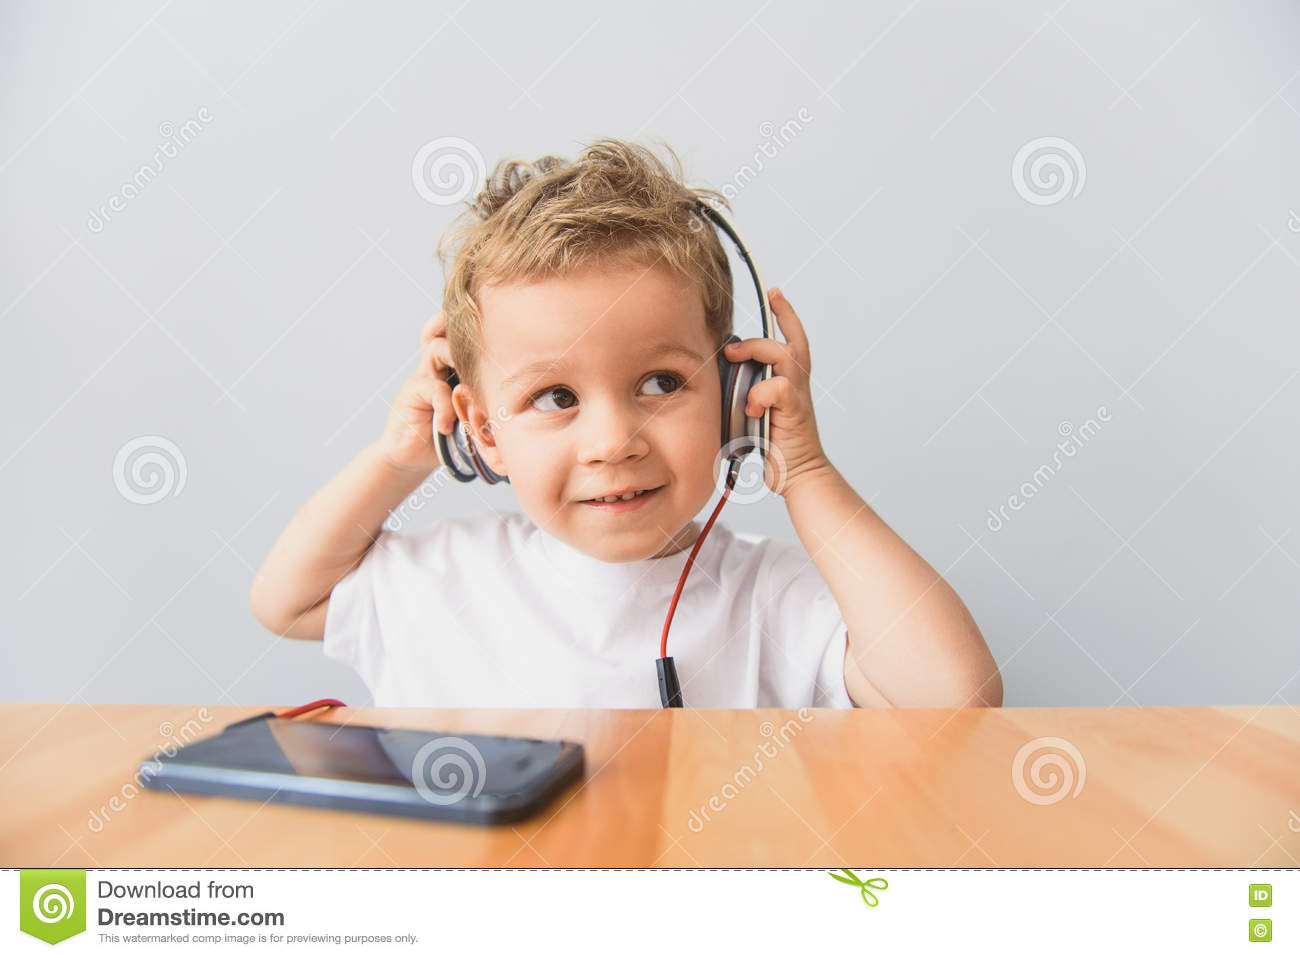 Music is for everyone smiling cute little boy listening to music on headphones using smartphone sitting at desk in studio